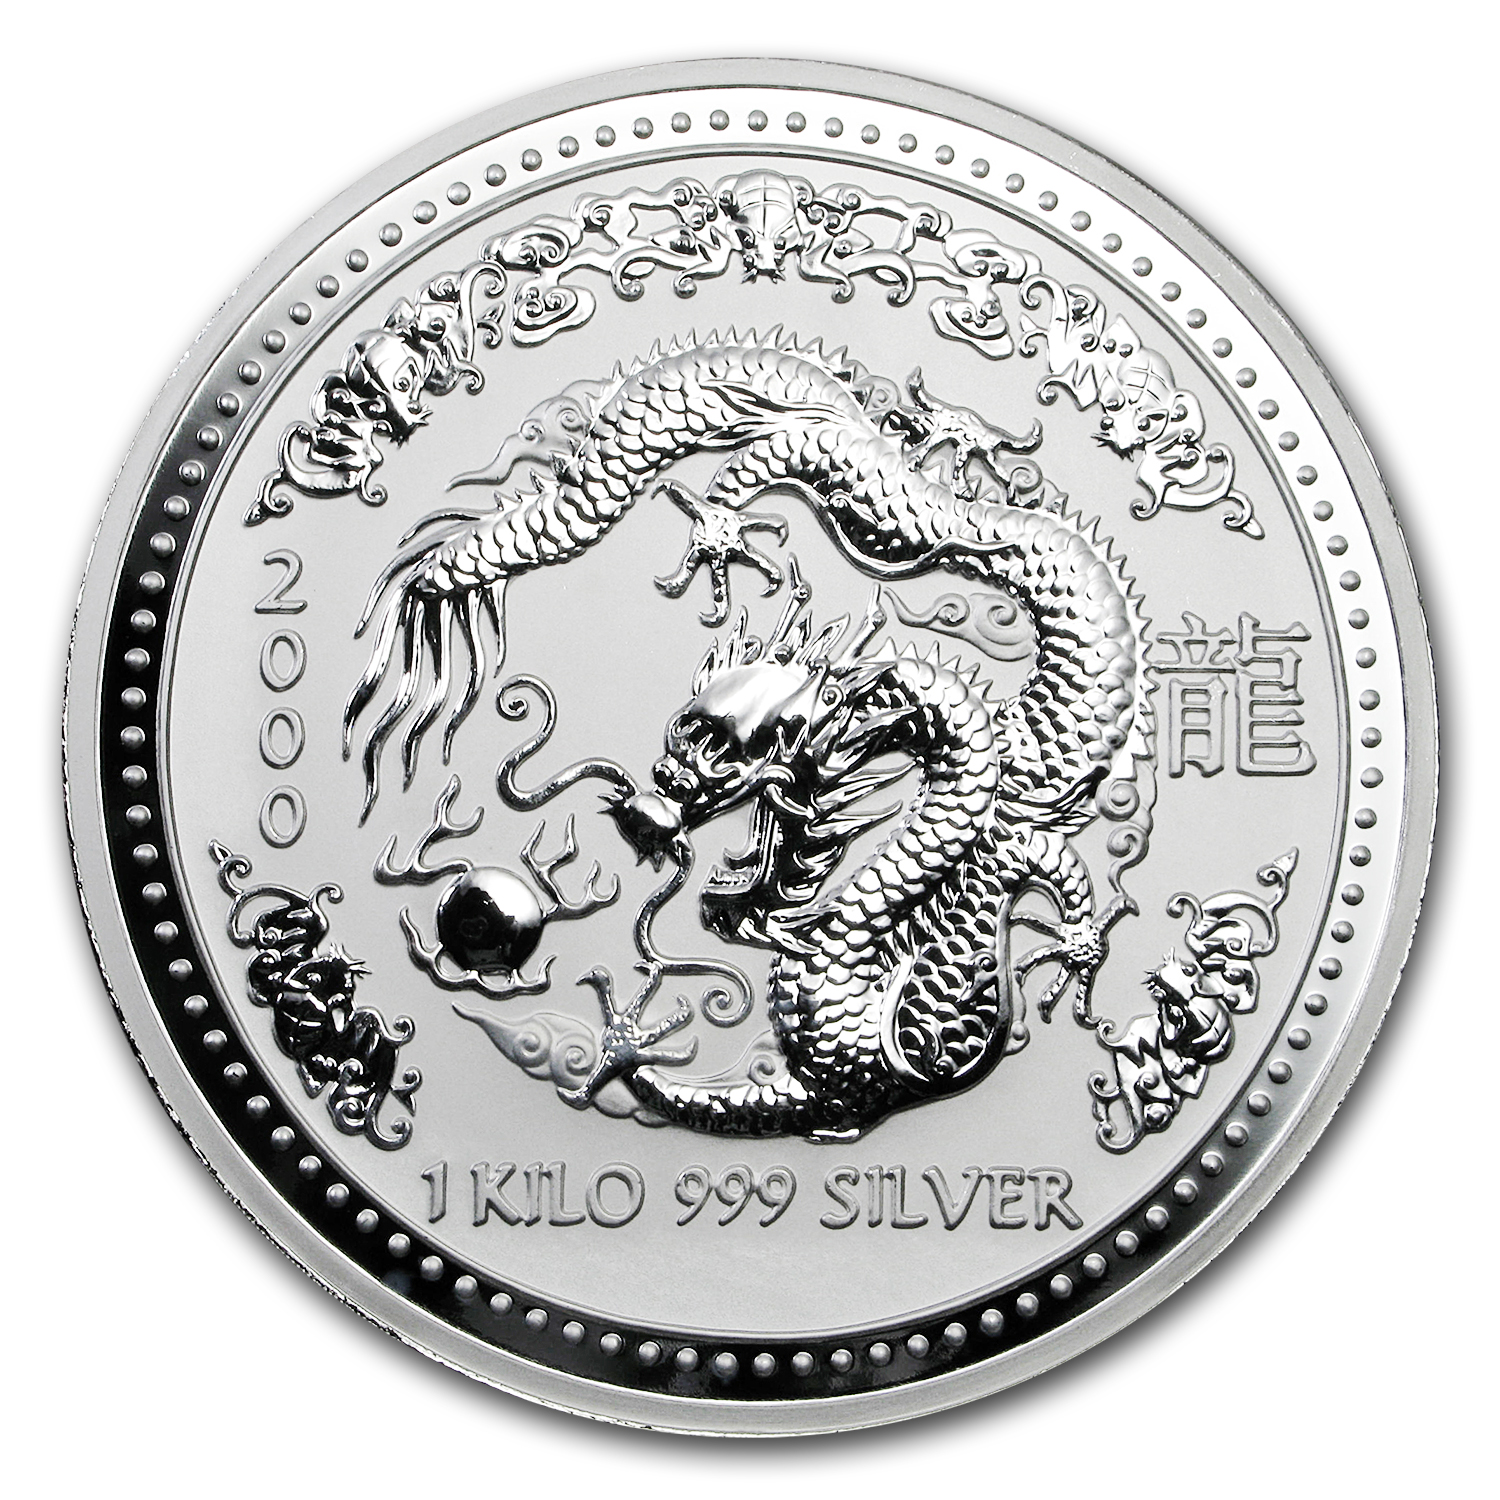 2000 Australia 1 kilo Silver Year of the Dragon BU